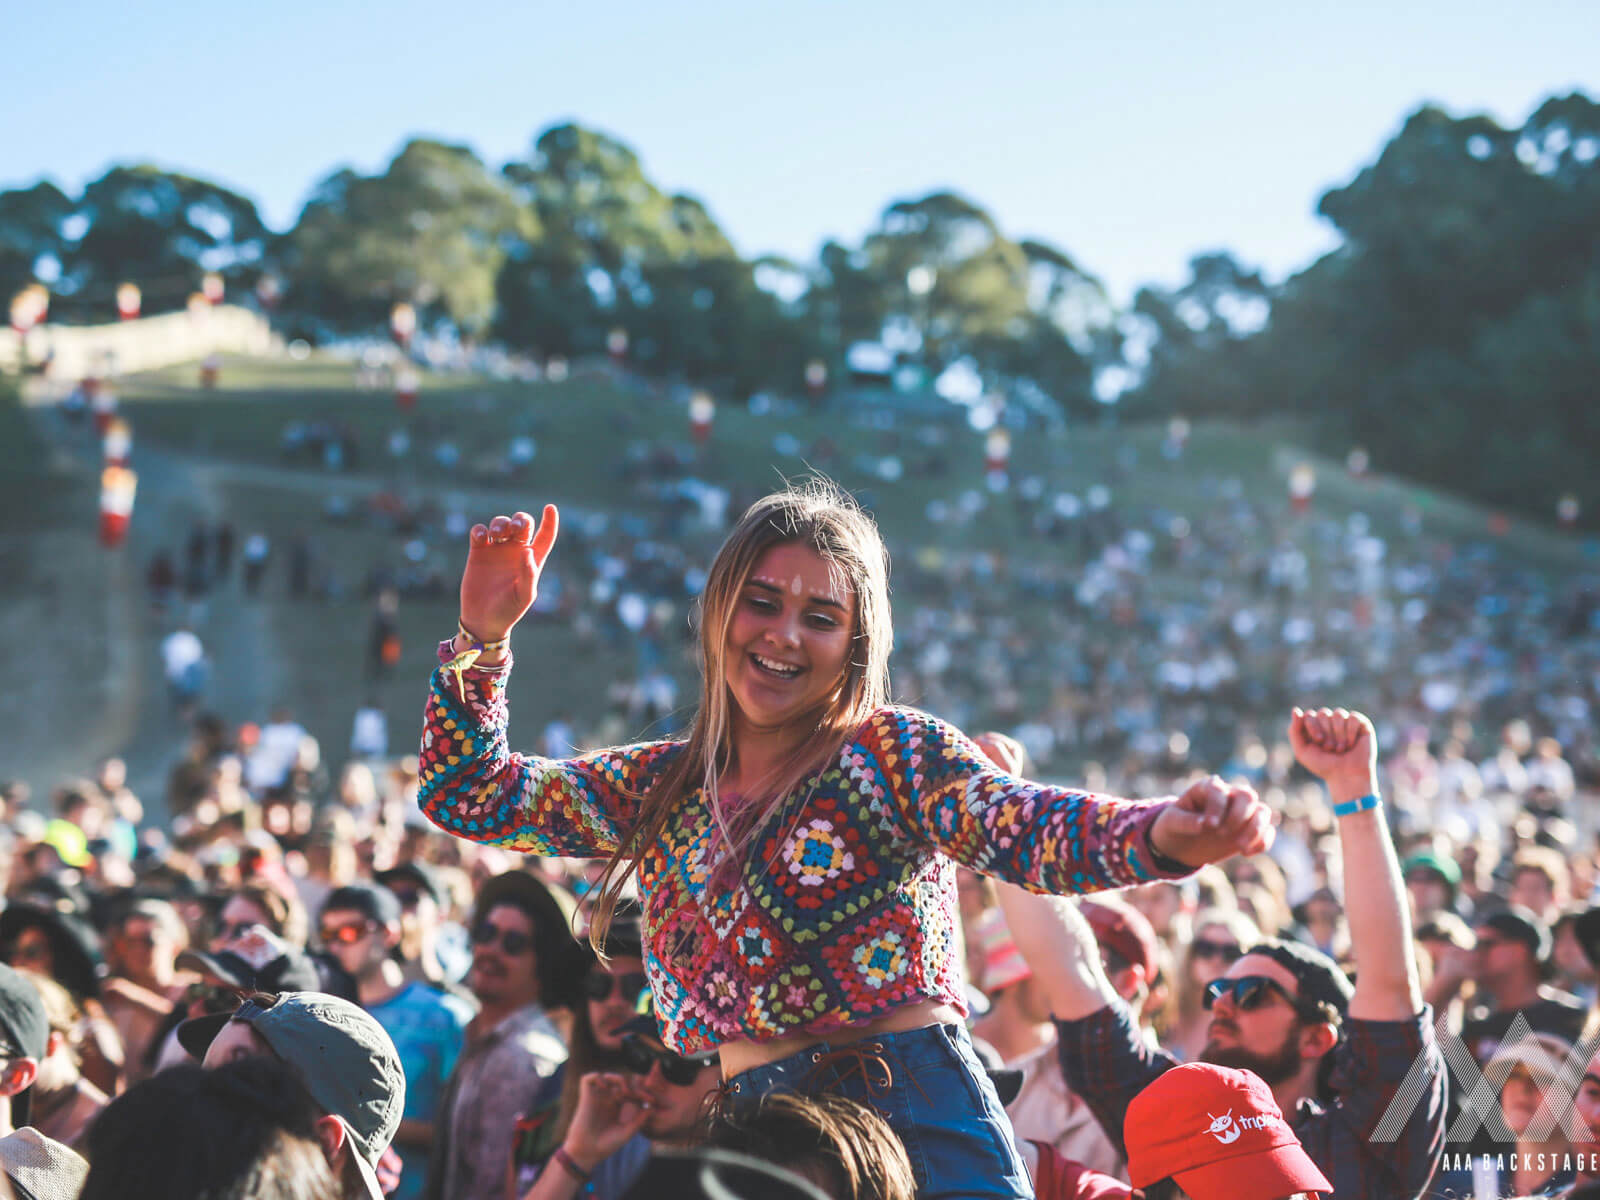 splendour-in-the-grass-2020-lineup-feature-oz-edm